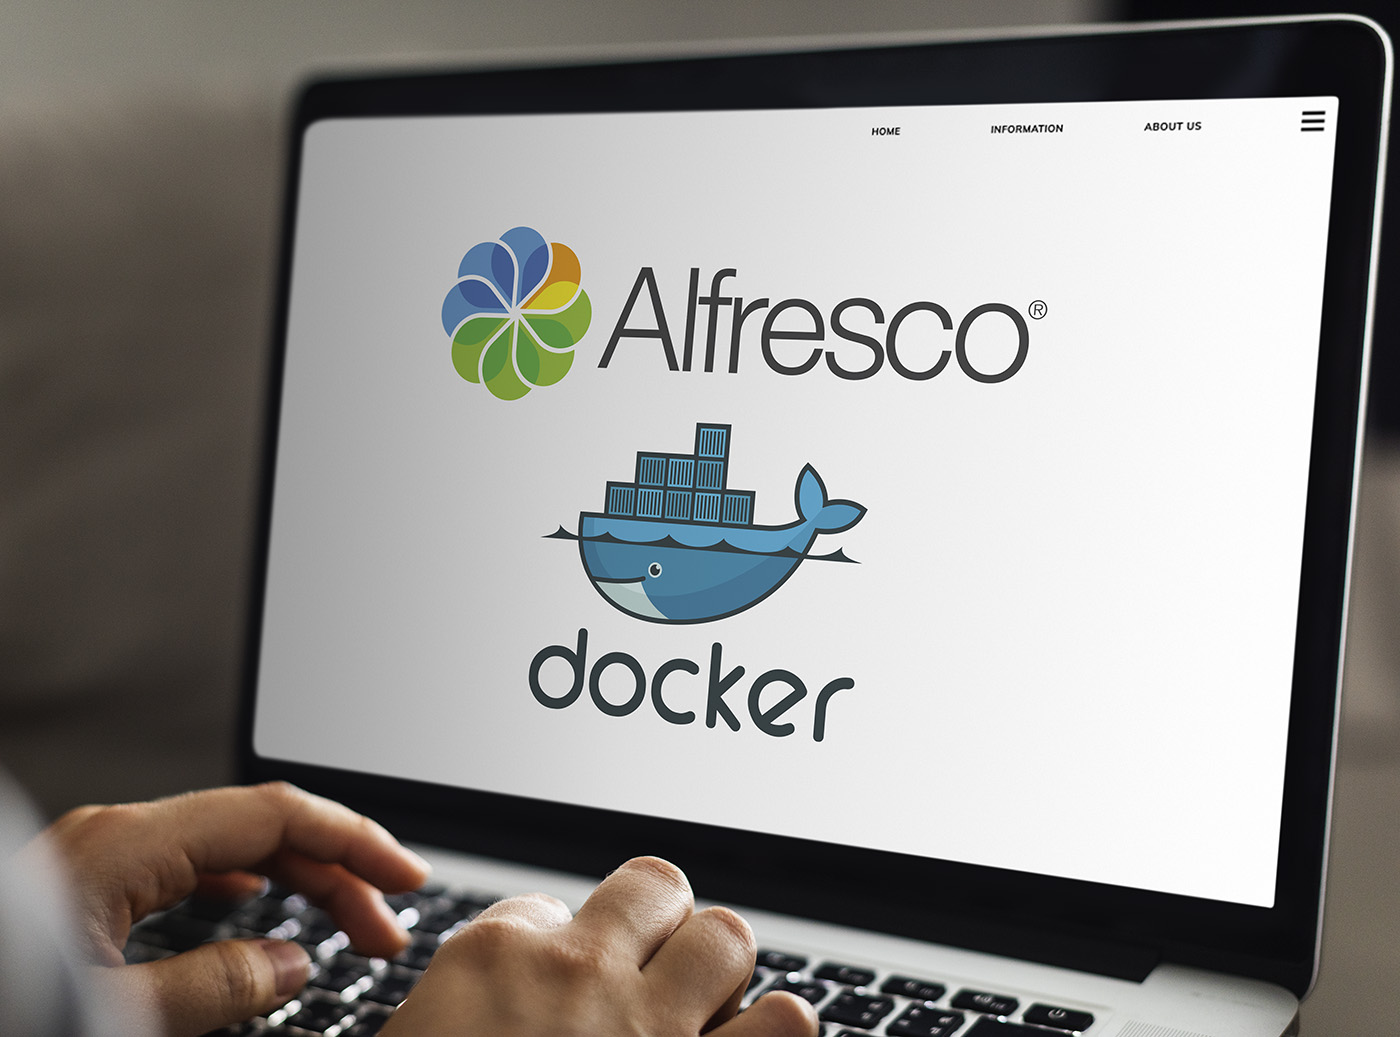 blog-docker-alfresco-sdk.jpg